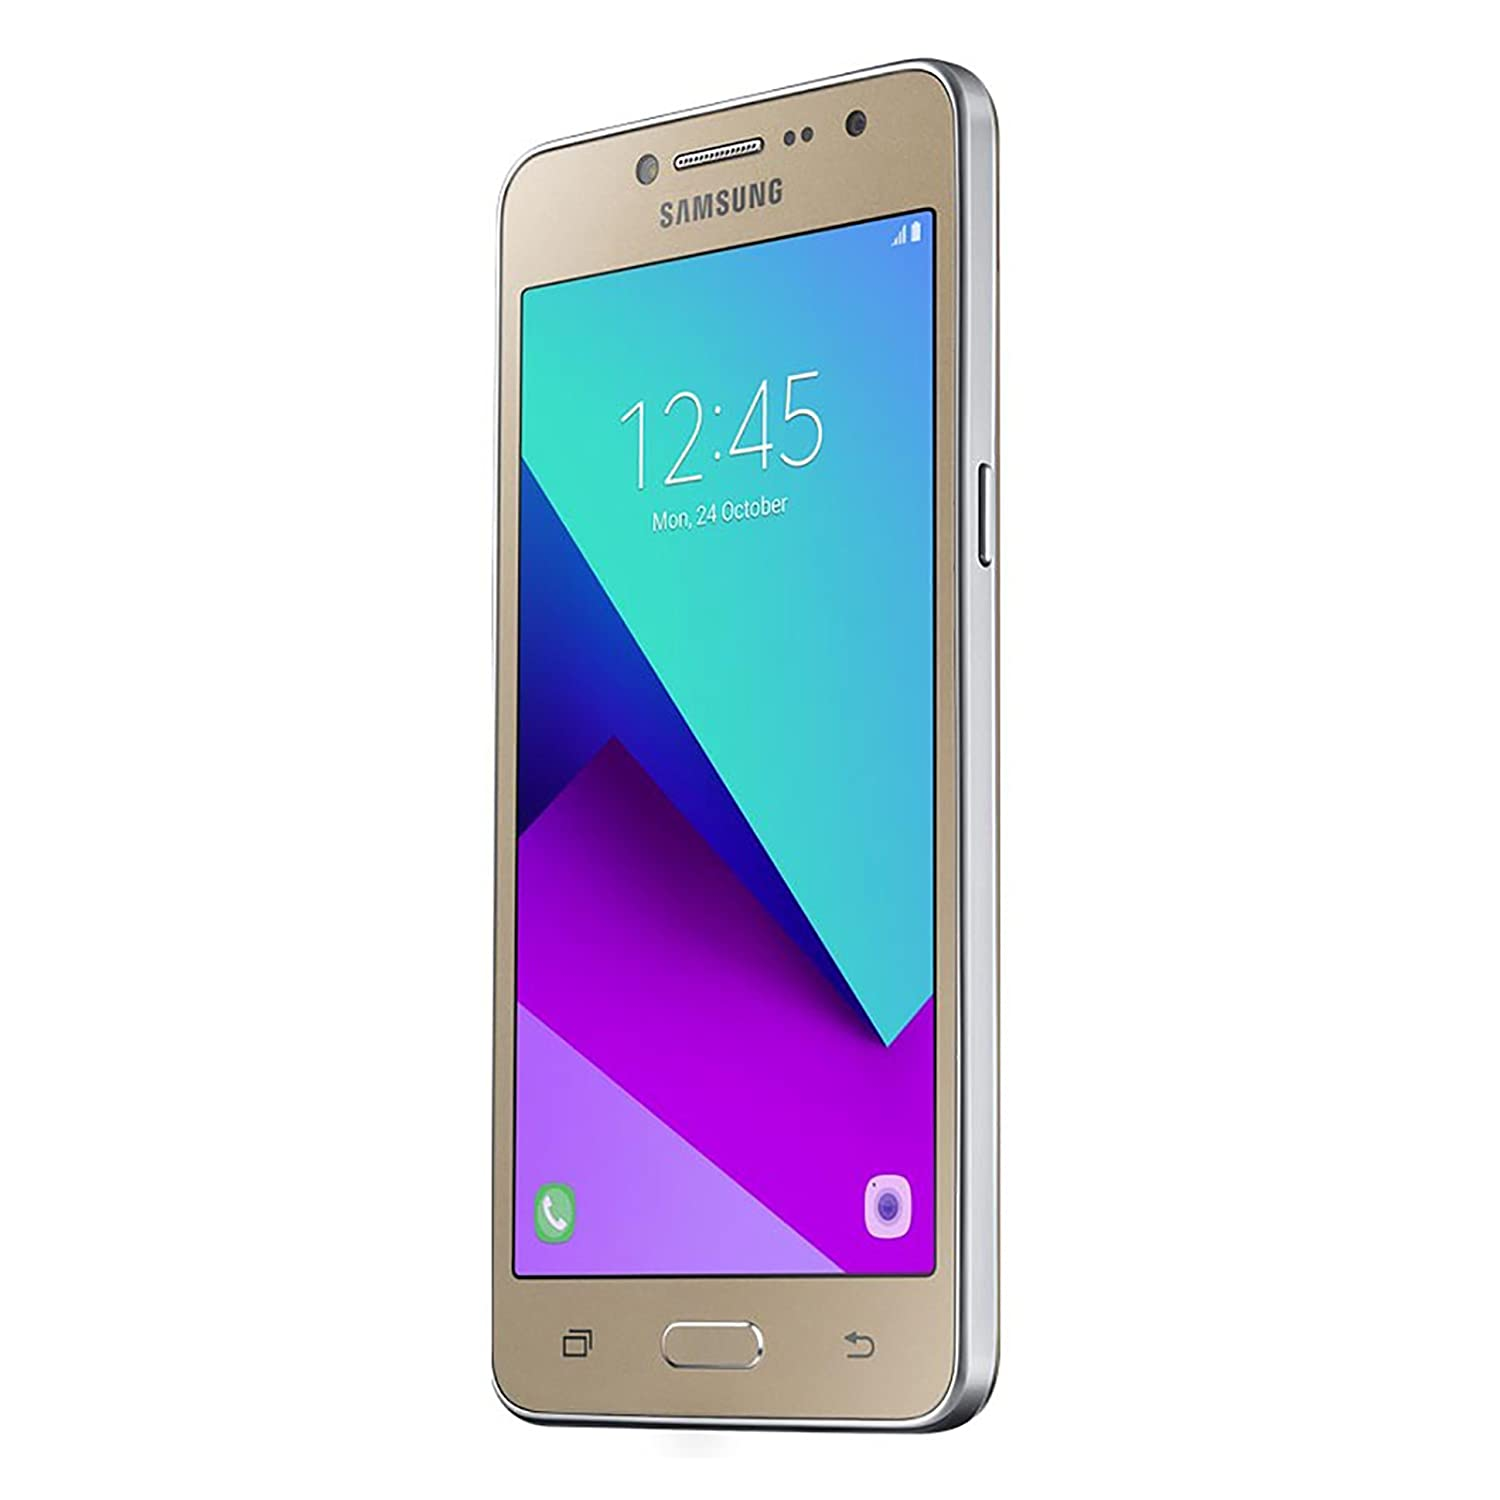 f741b2b92 Amazon.com  Samsung Galaxy J2 Prime 2016 Unlocked SM-G532M Duos 4G LTE US    Latin Bands (Gold) - International Version  Cell Phones   Accessories